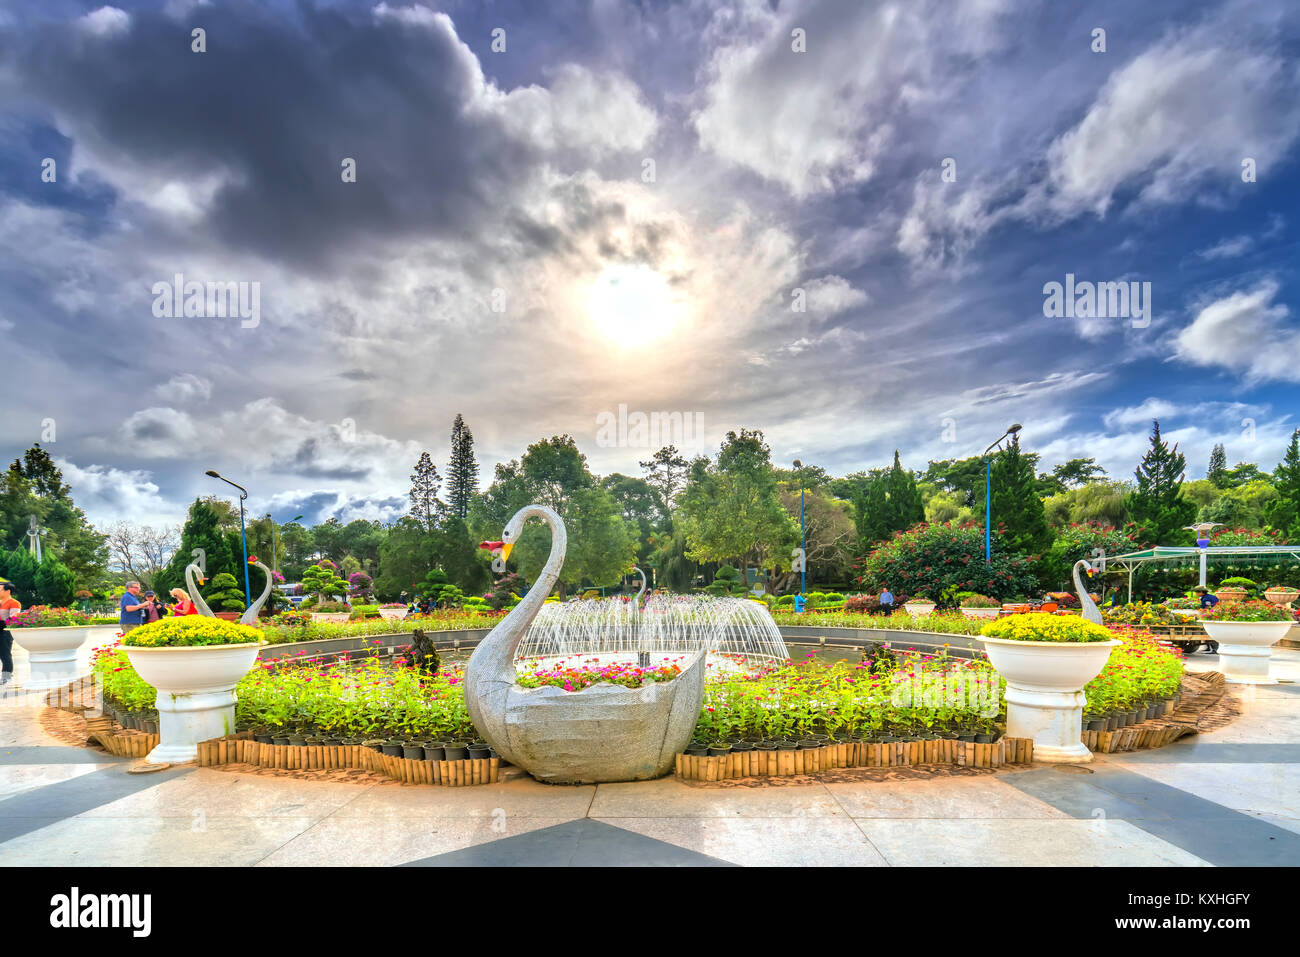 Garden flower city in afternoon sunshine, here is a gallery of types of tropical flowers attract many tourists at - Stock Image